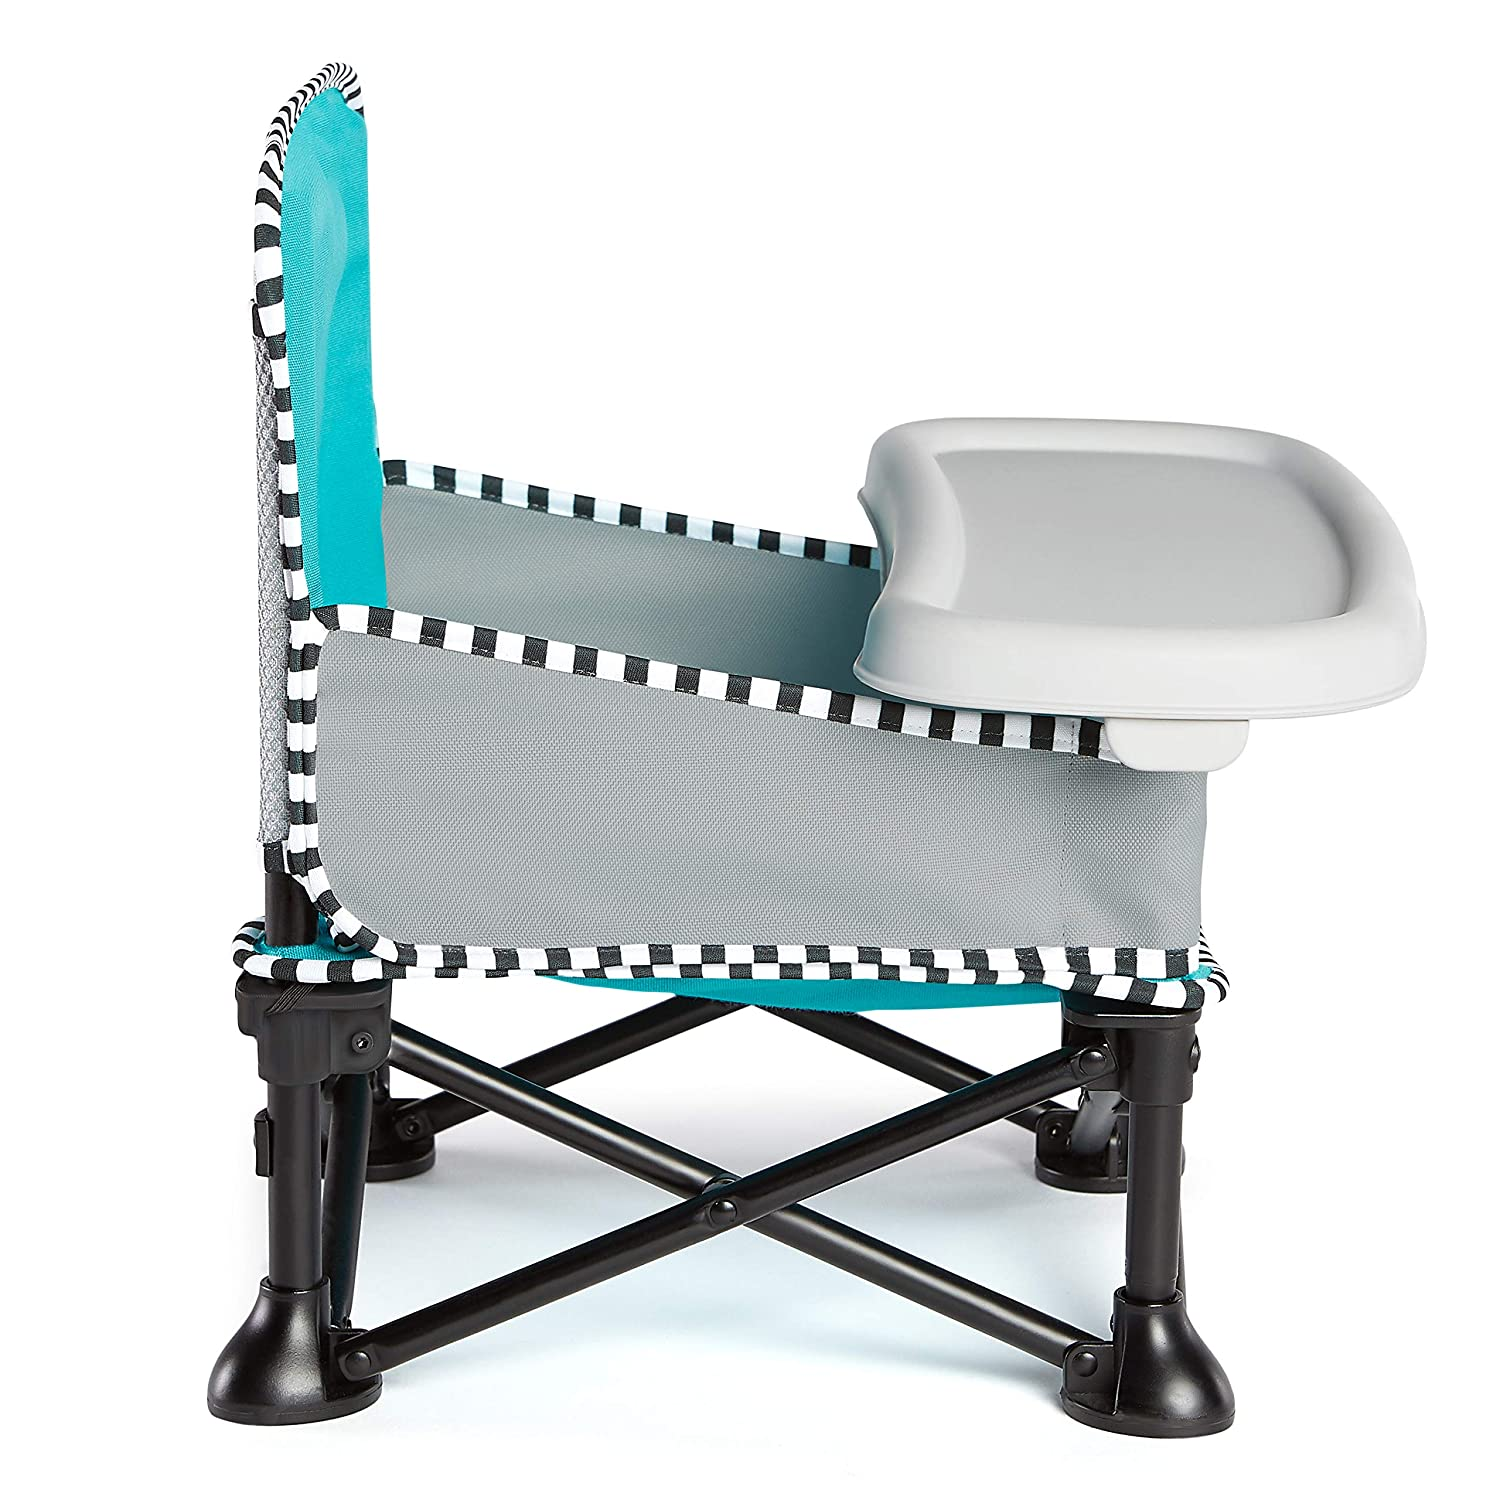 Baby Lounger for Indoor//Outdoor Use Easy and Compact Fold Summer Pop /'n Sit SE Recline Lounger Fast Sweet Life Edition Blue Raspberry Color Grows with Baby and Can be a Floor and Booster Seat